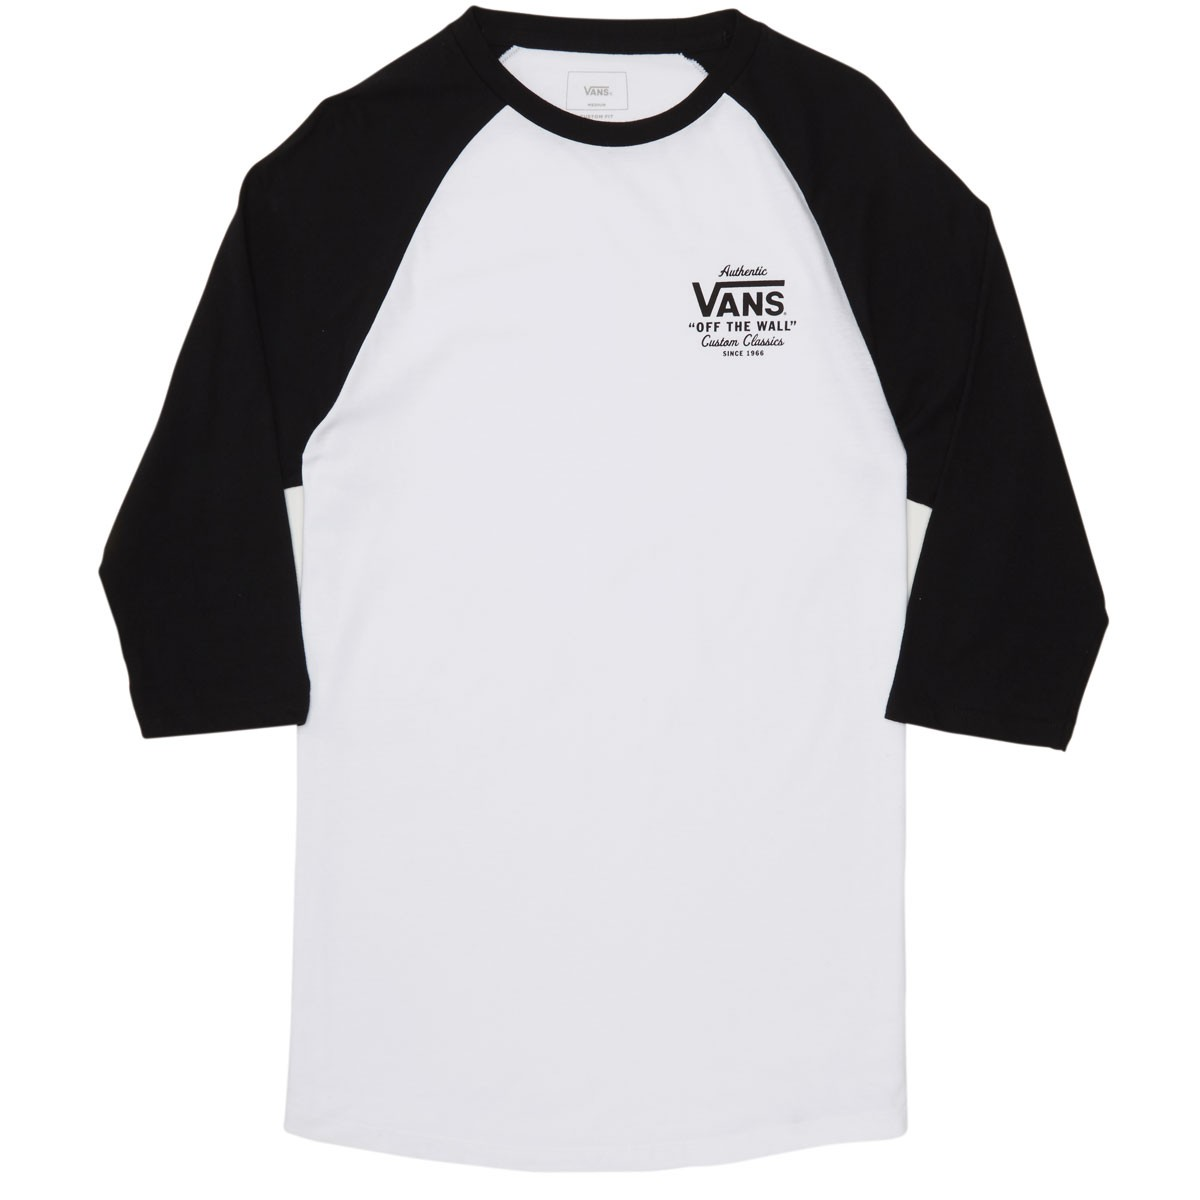 7c628a8897 Vans Holder St Raglan T-Shirt - White Black